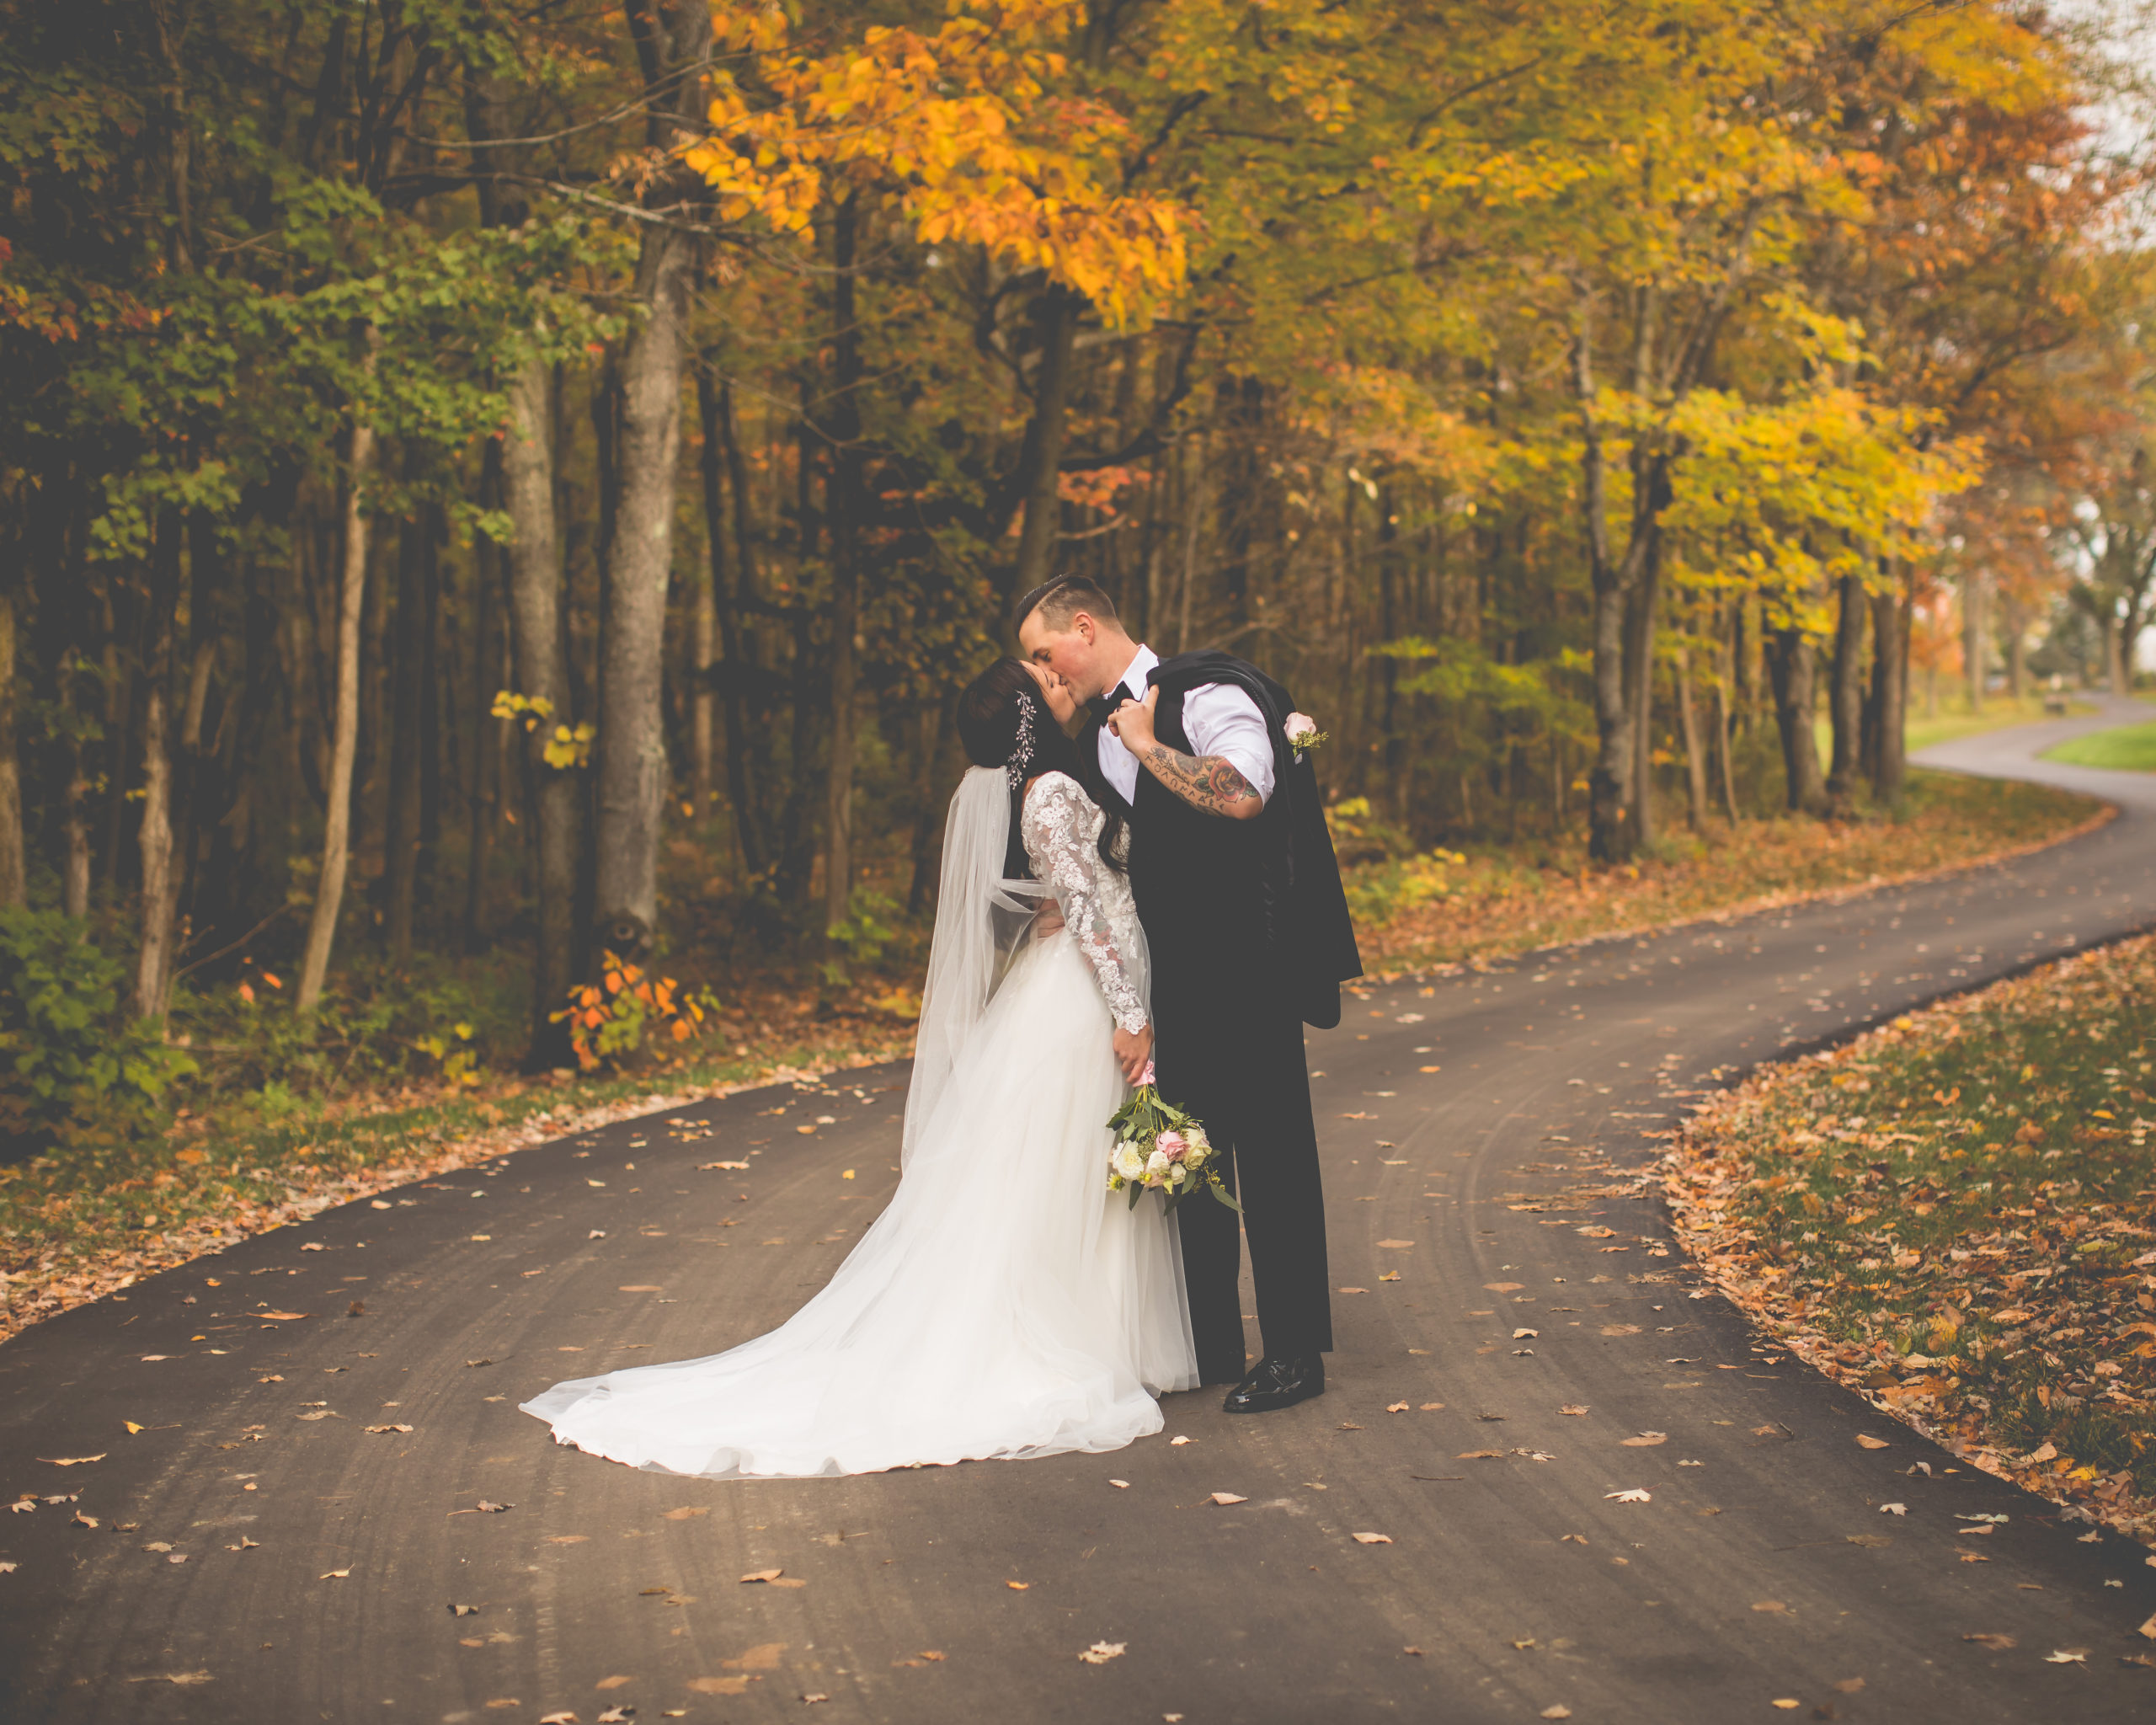 Allegan, Michigan Wedding bride and groom kissing on paved driveway